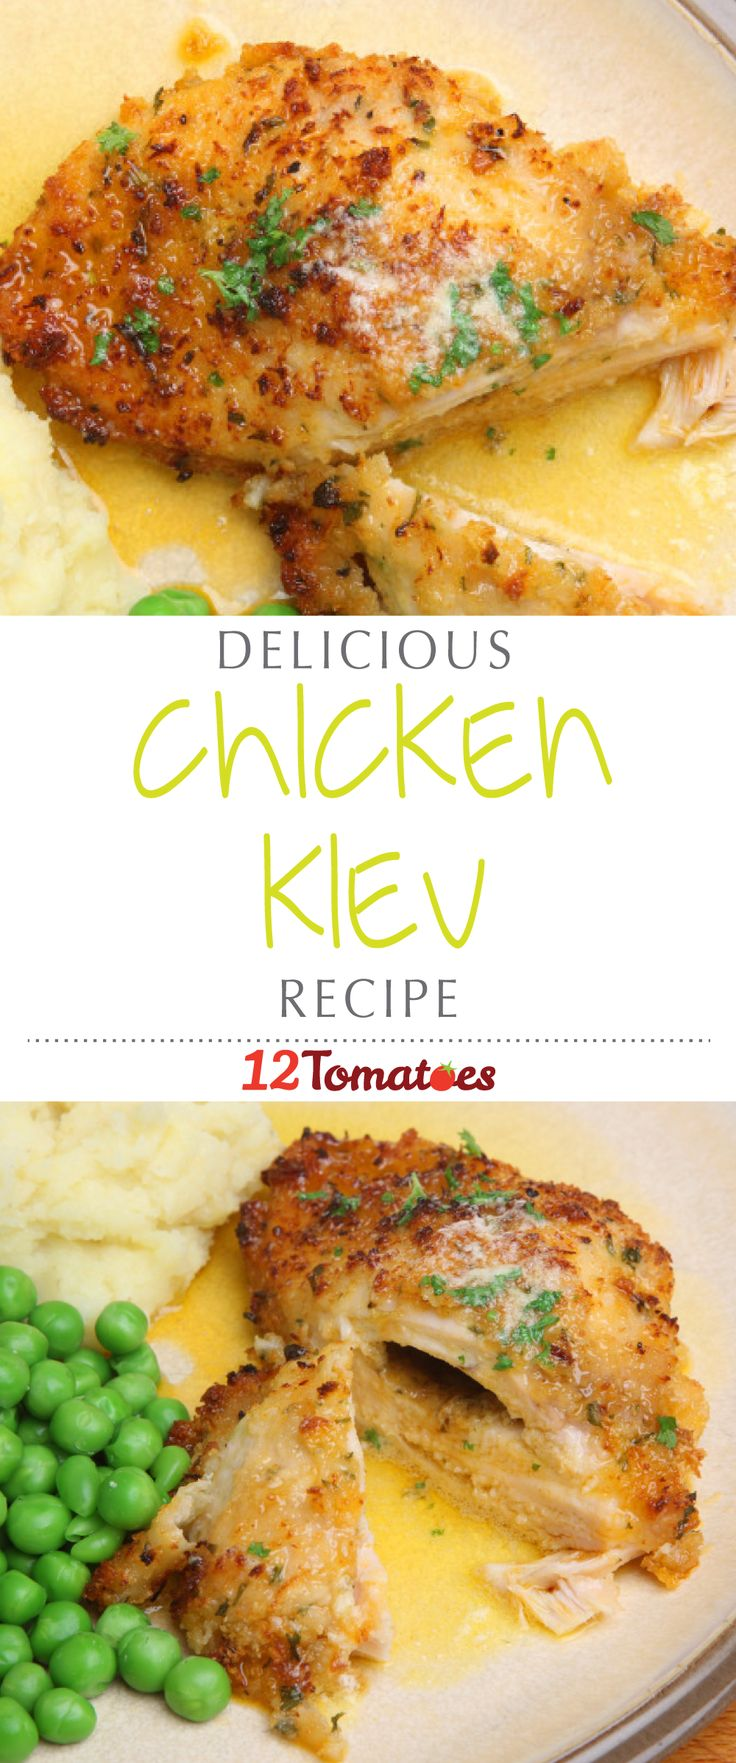 Chicken Kiev   This chicken is deliciously juicy and steals the show every time I make it!